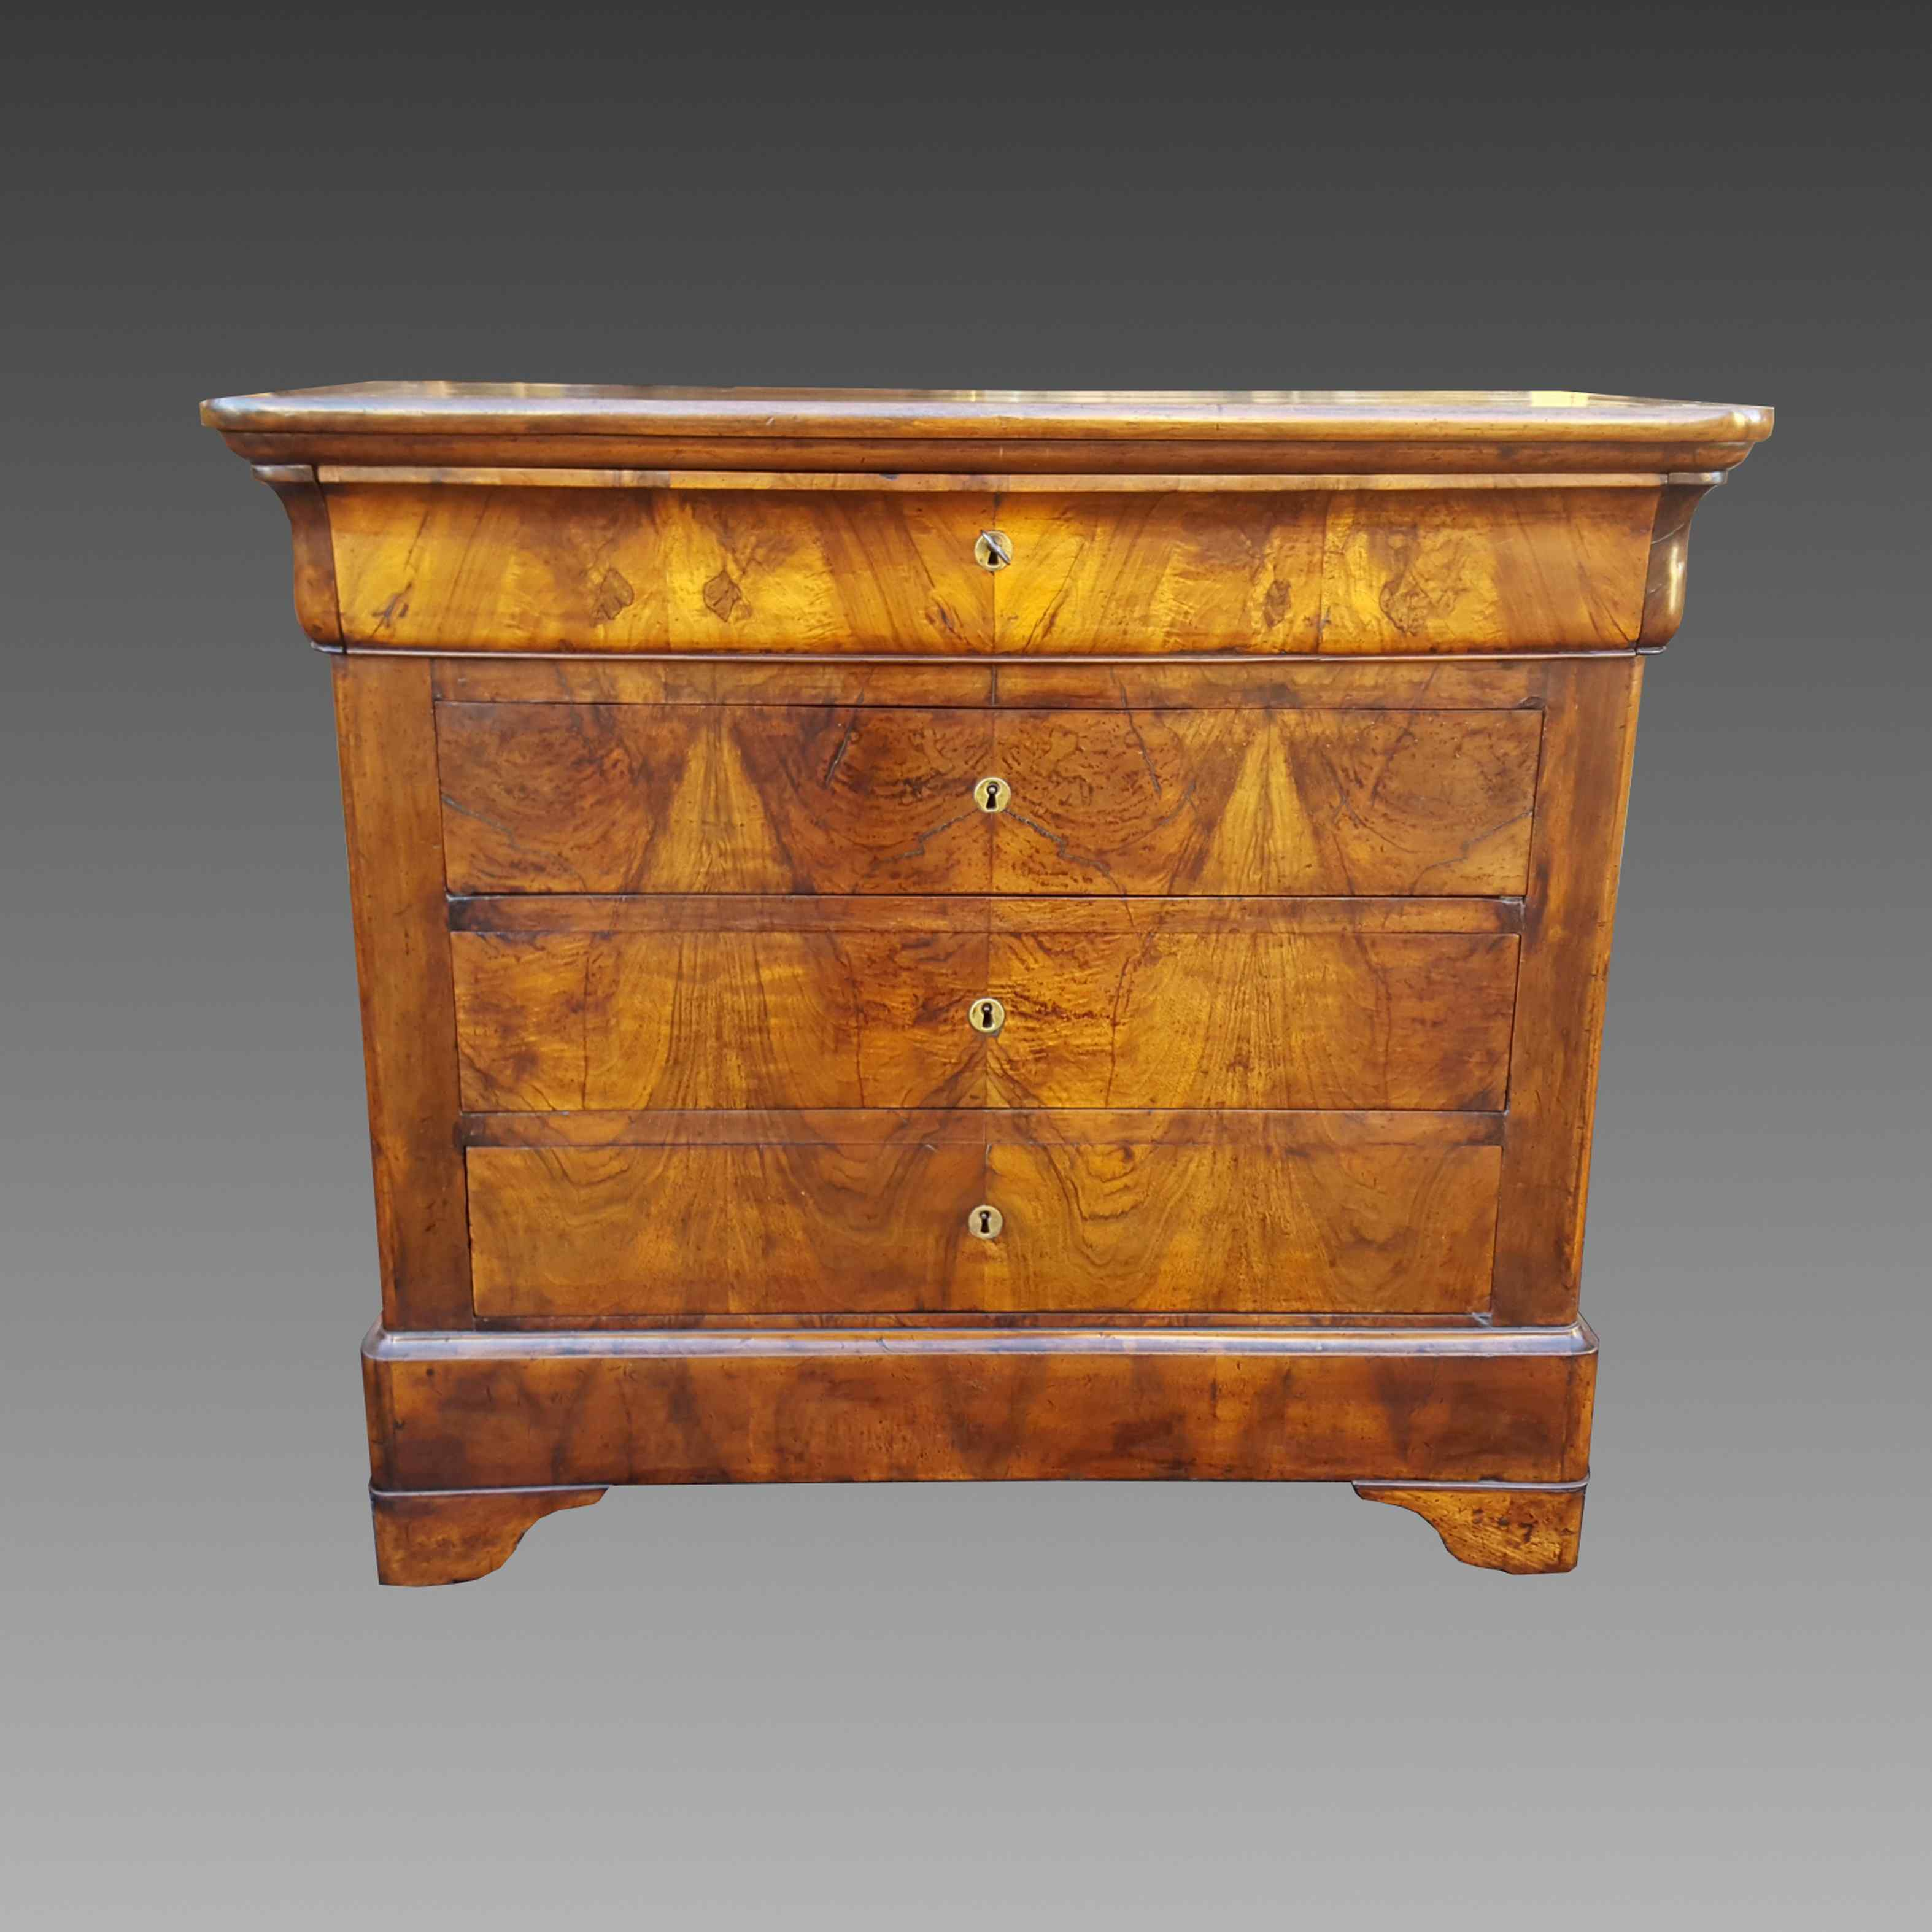 Antique Louis Philippe Commode Chest of drawers walnut -19th